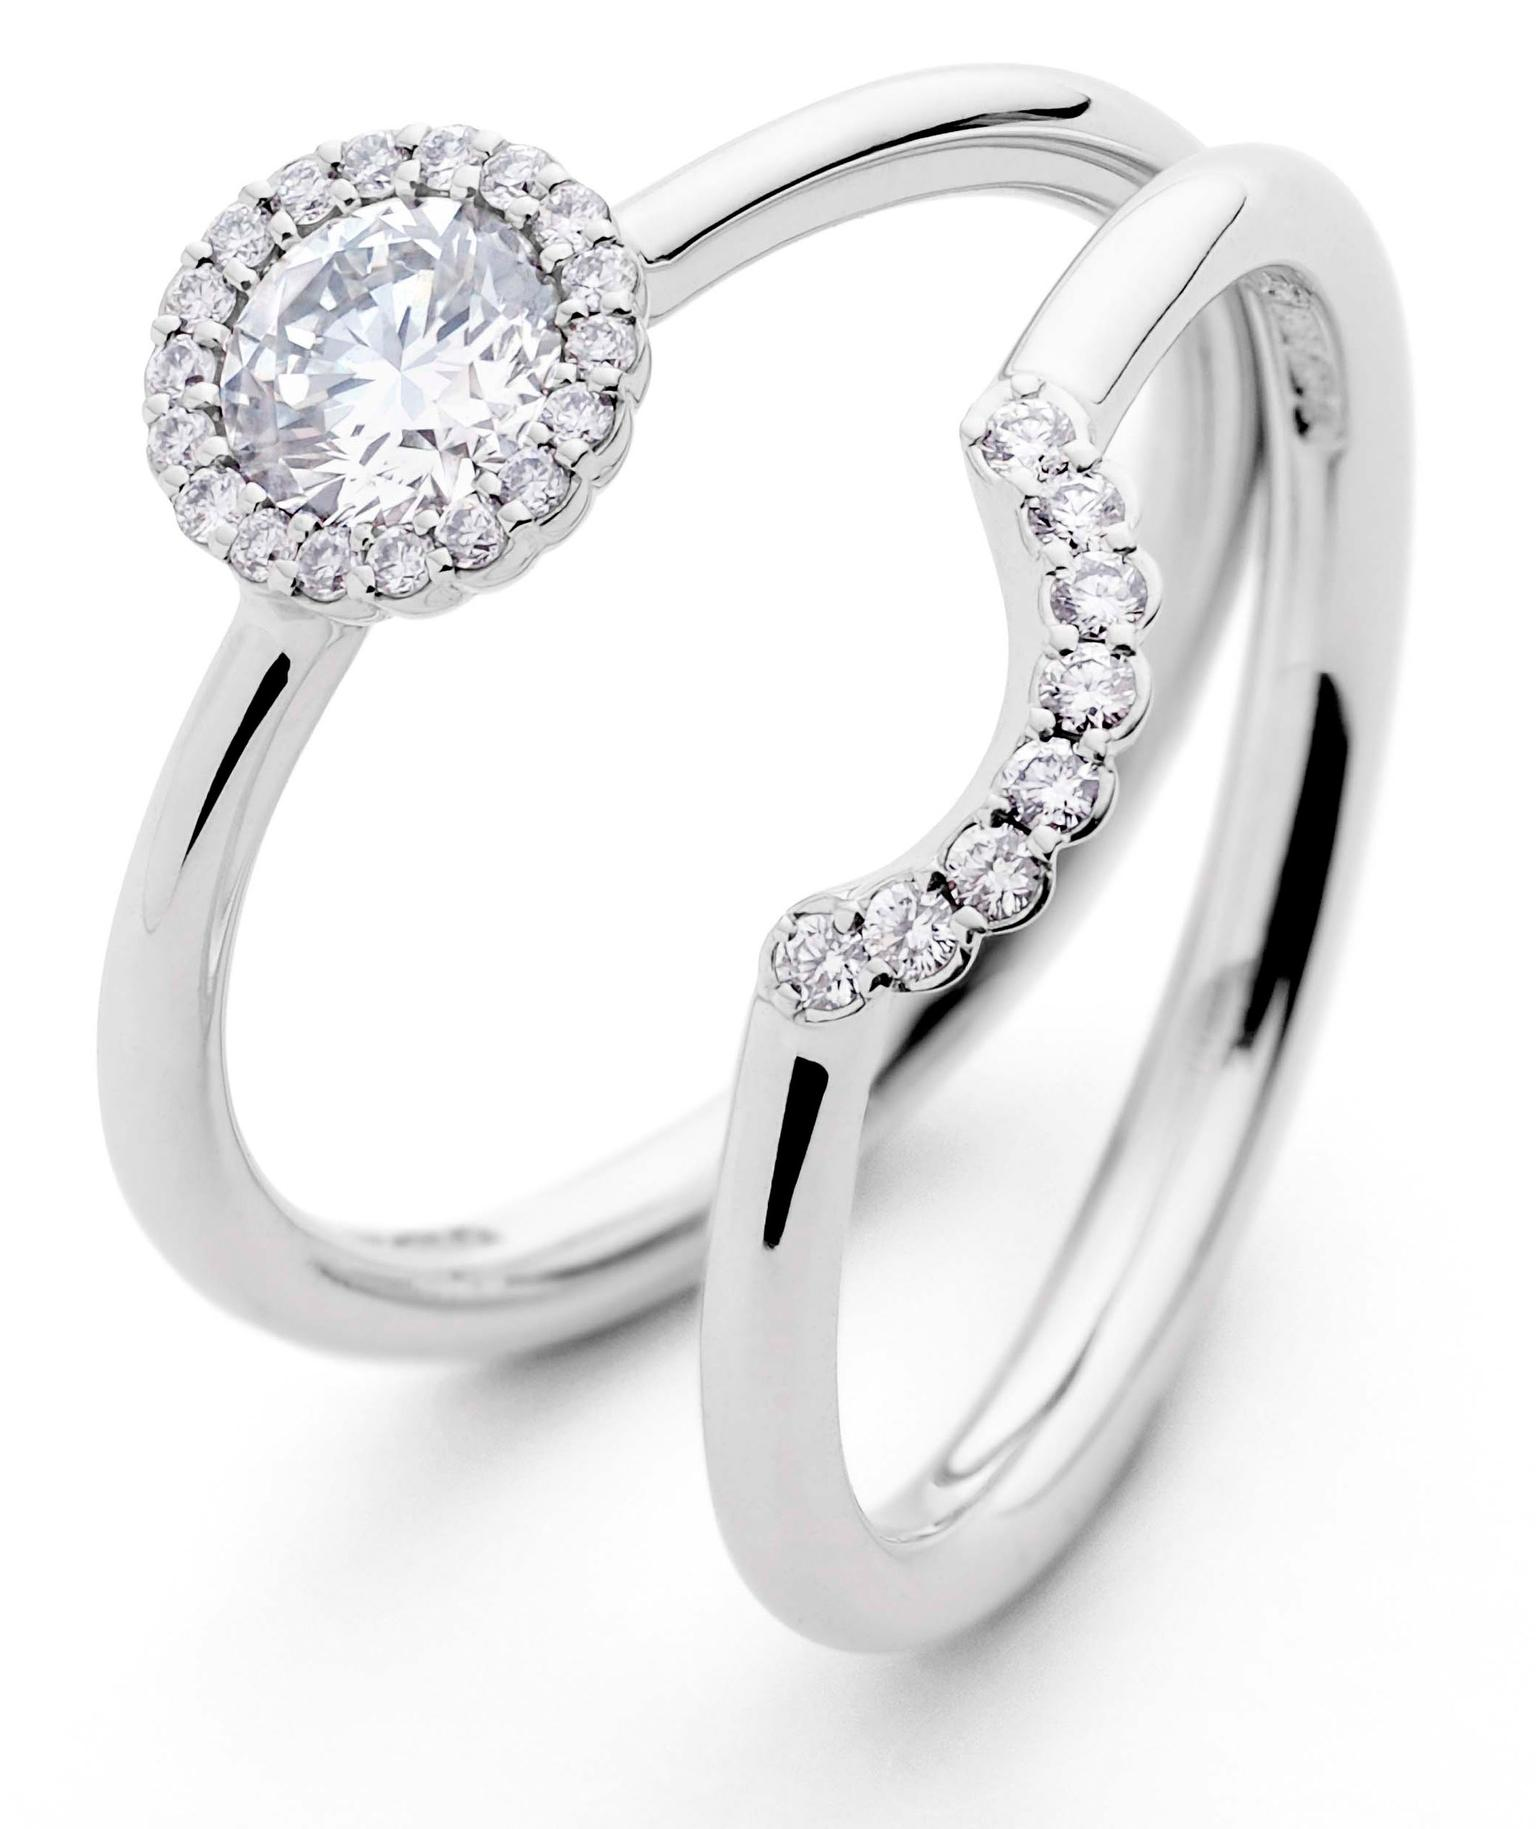 Wedding Ring His And Hers 96 Fancy AG Wedding Set zoom